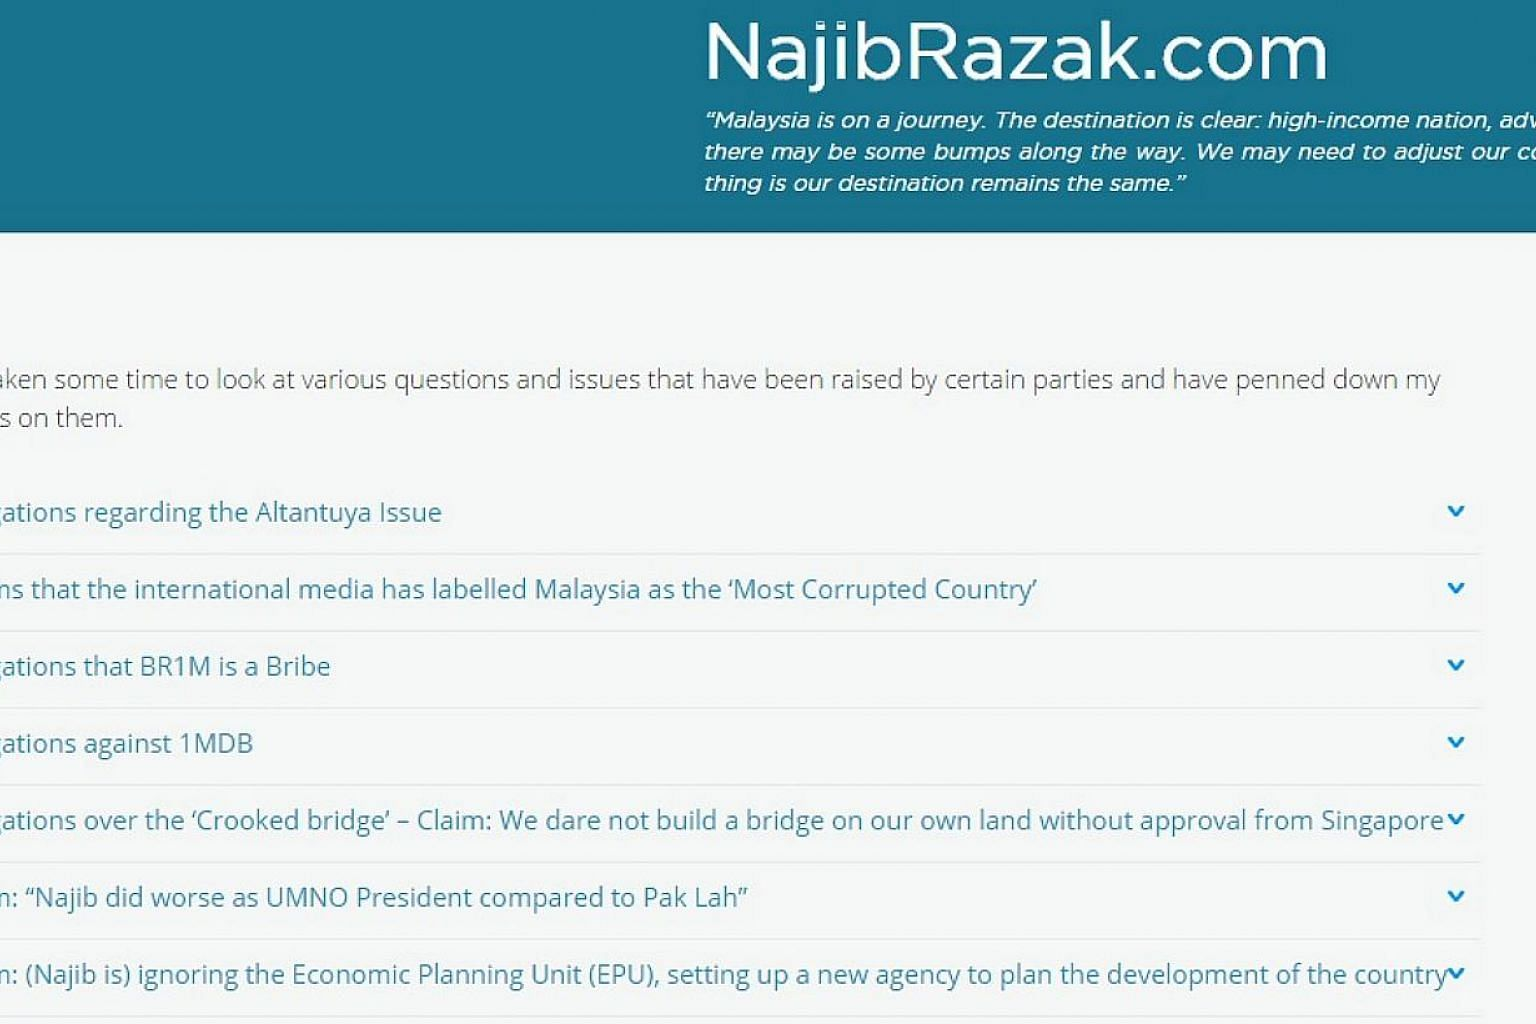 Malaysian Prime Minister Najib Razak has posted FAQs (Frequently Asked Questions) on his blog in an unprecedented move to silence questions about his leadership by critics such as former premier Mahathir Mohamad. Here's a screengrab from his blog. --